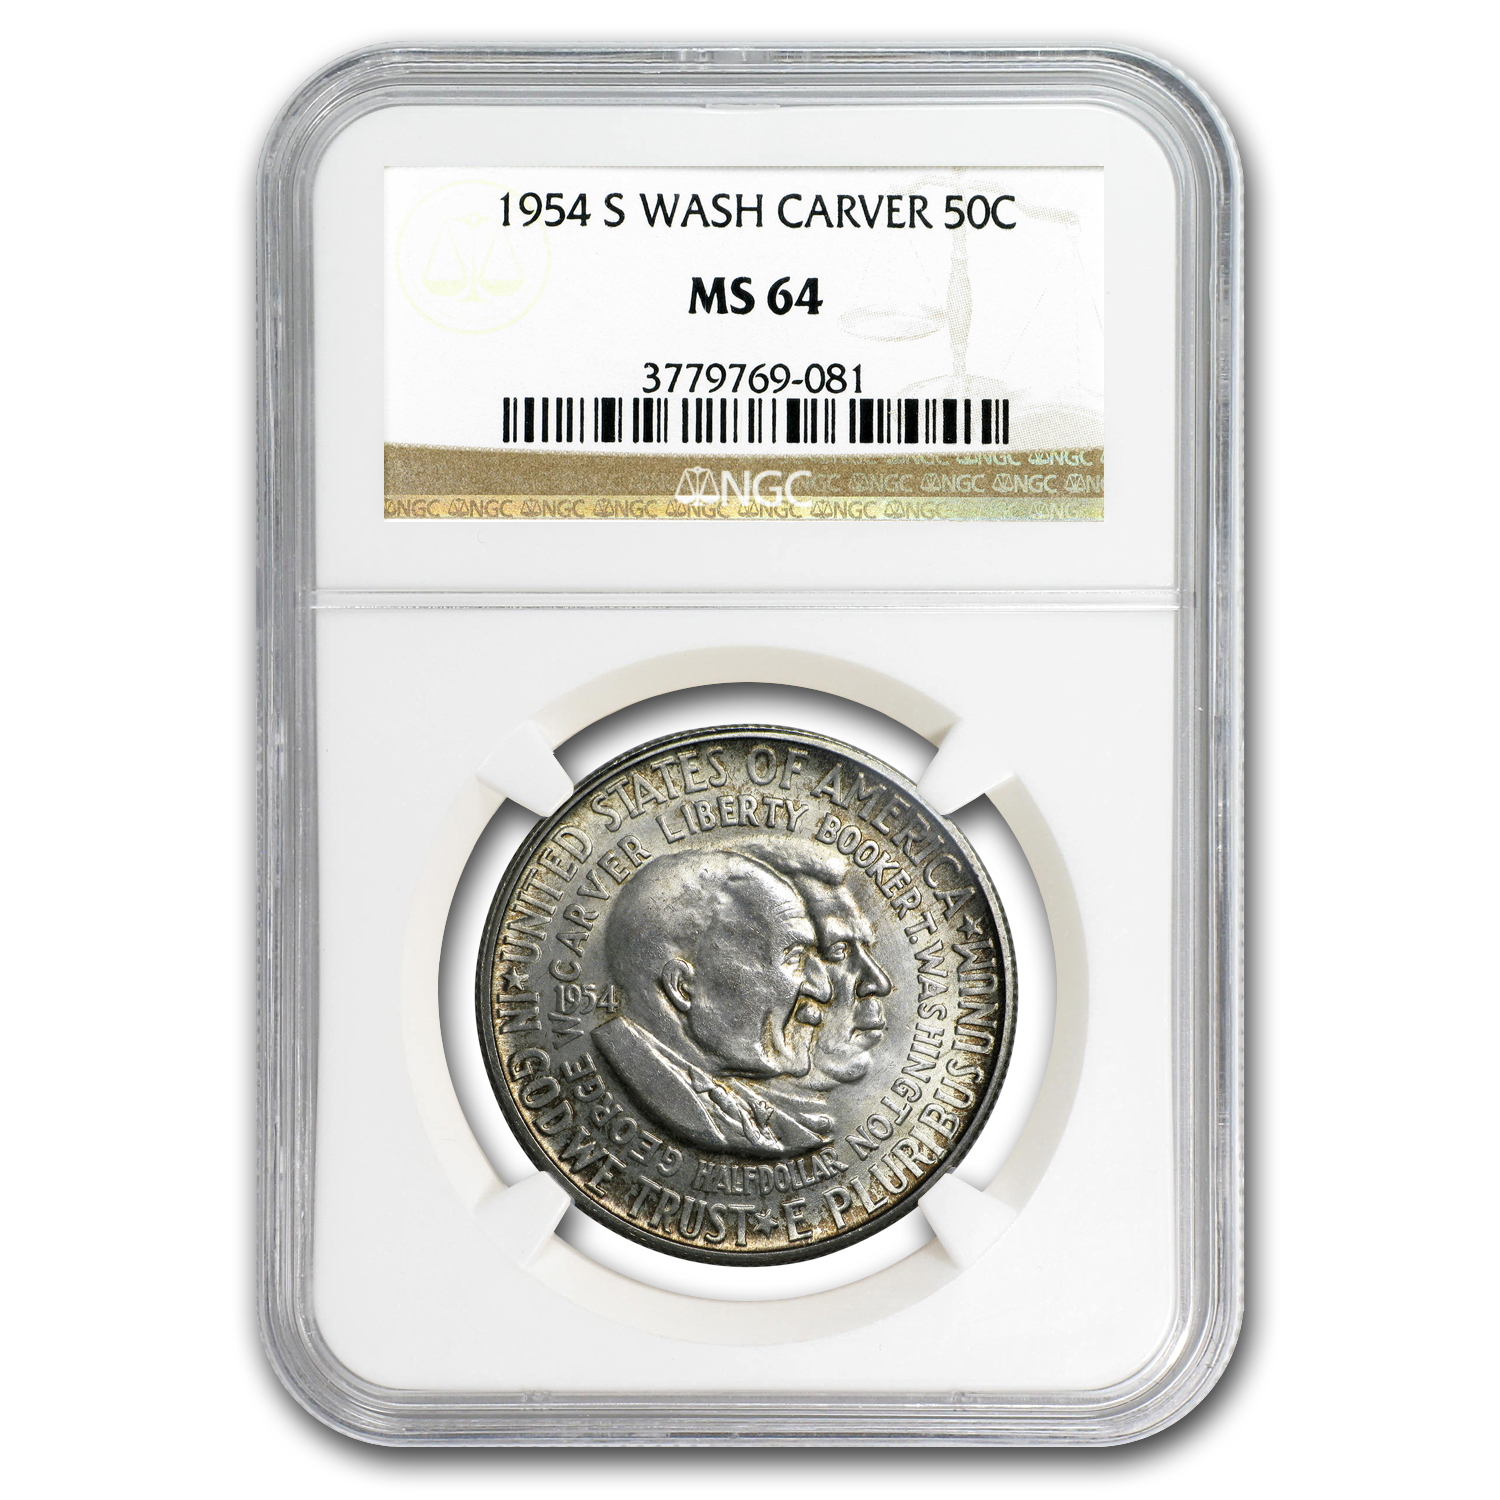 1954-S Washington-Carver Half MS-64 NGC